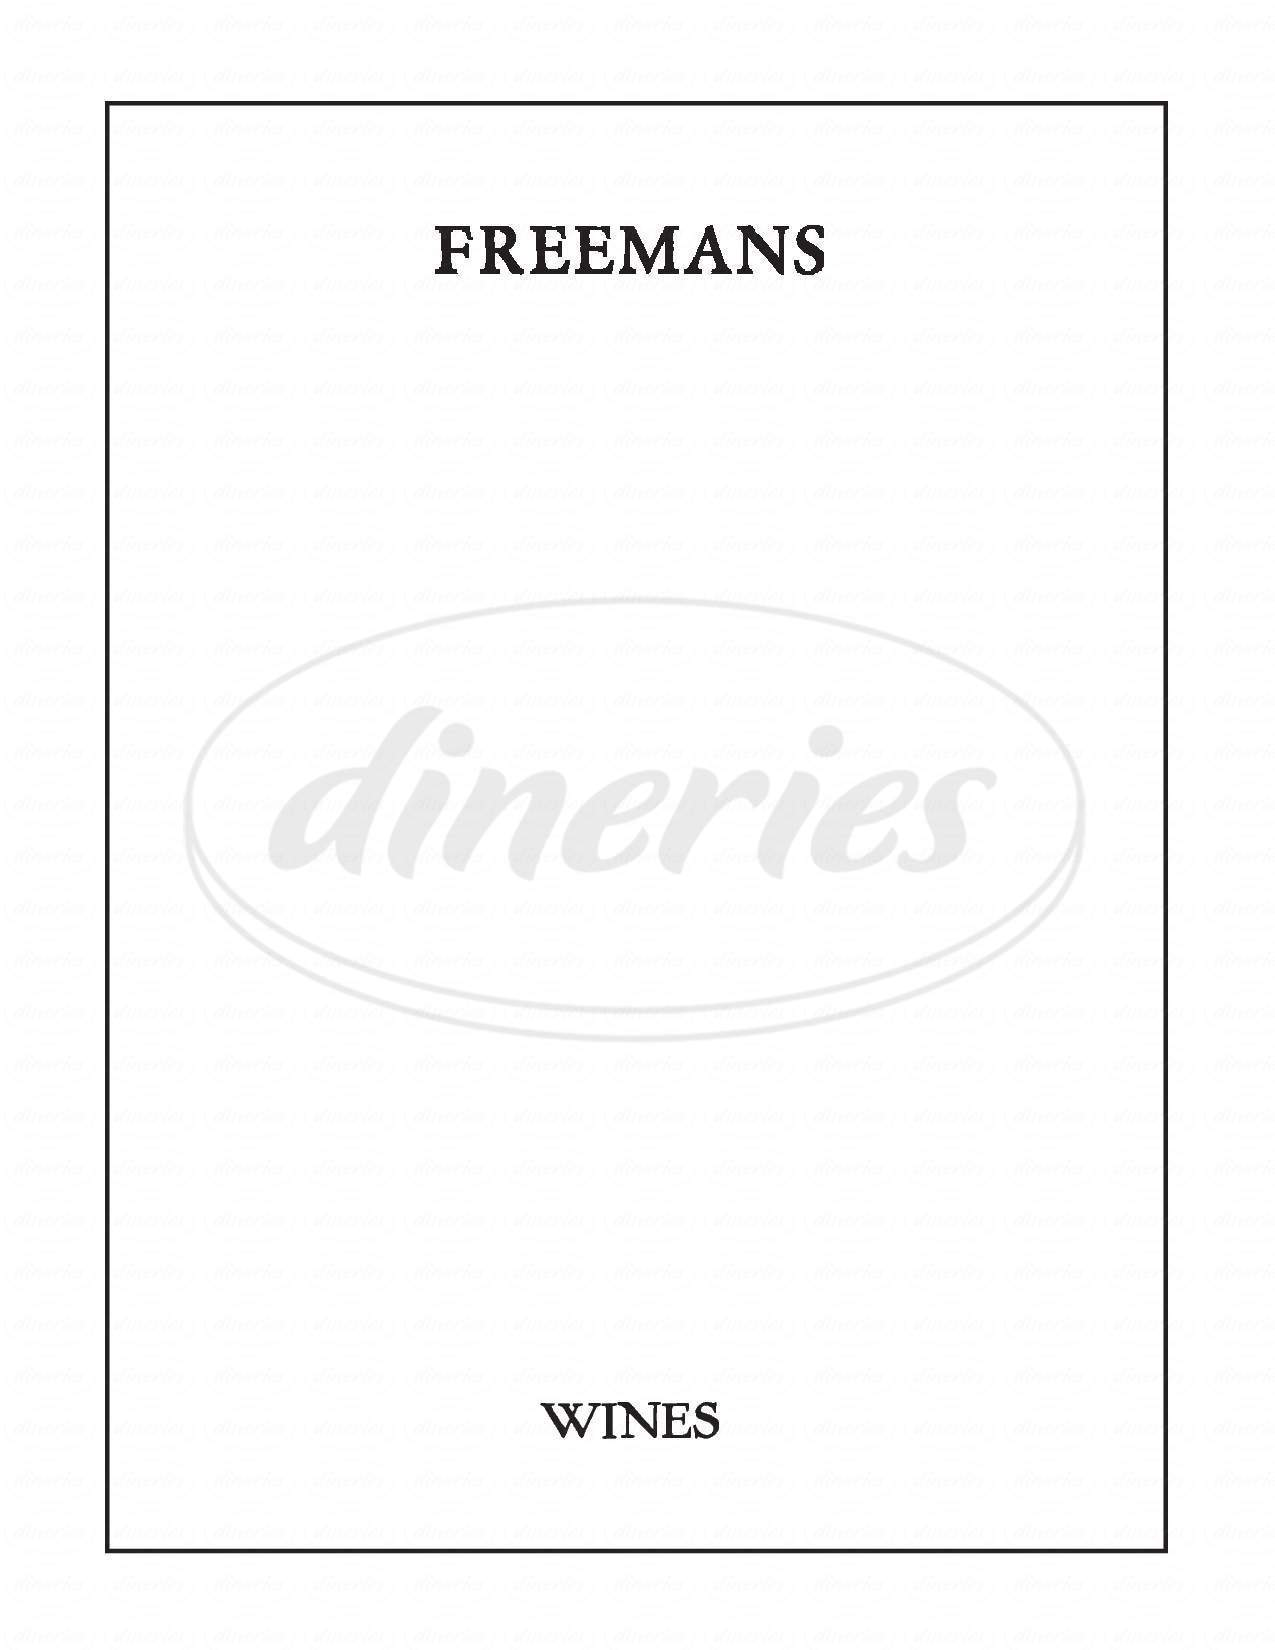 menu for Freemans Restaurant